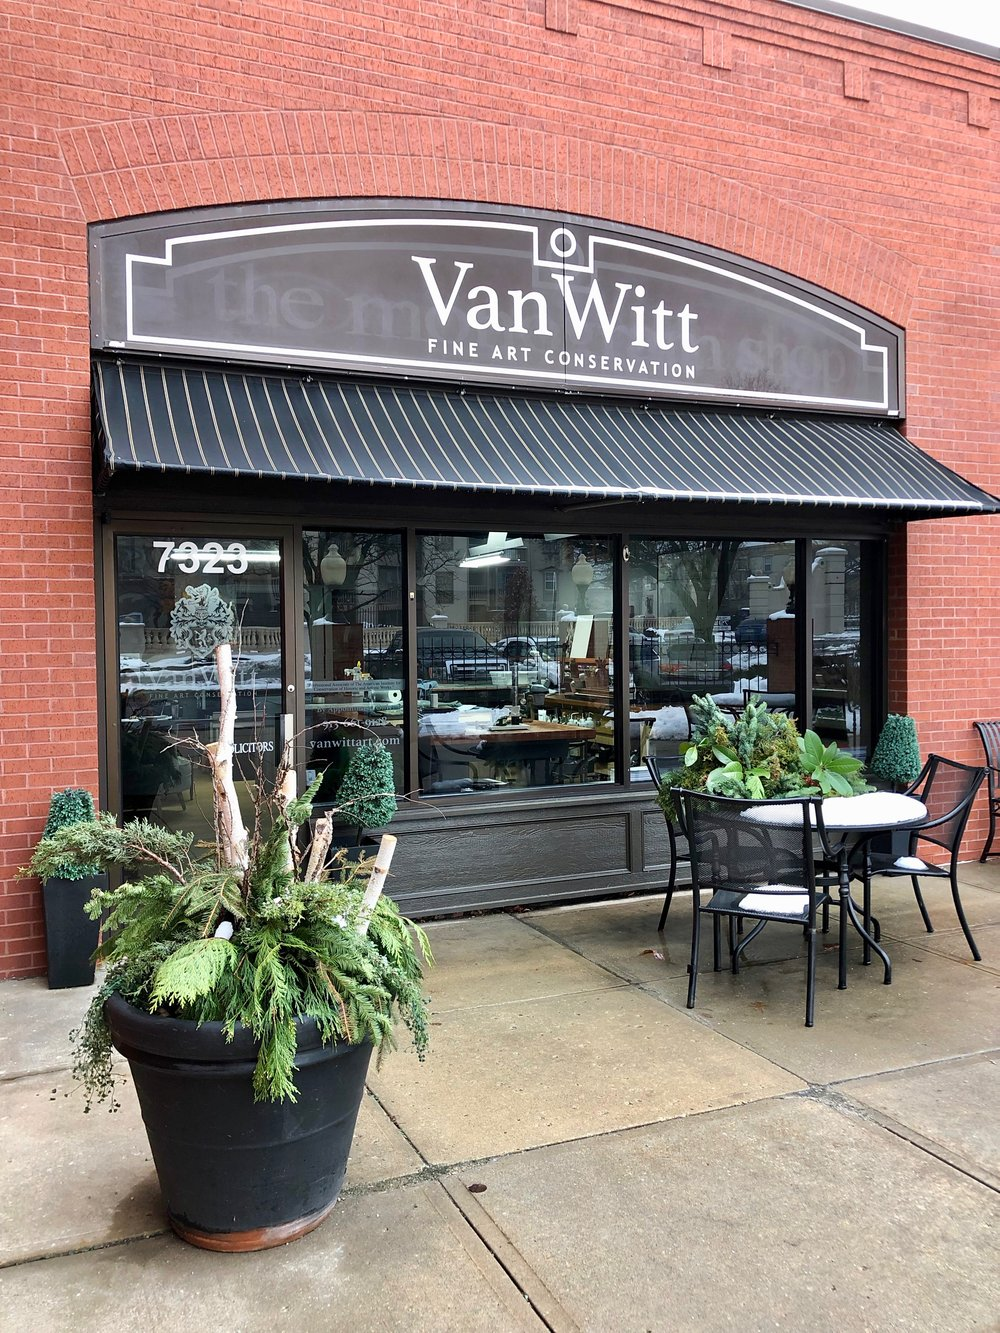 The Van Witt Fine Art Studio located in Overland Park, Kansas.